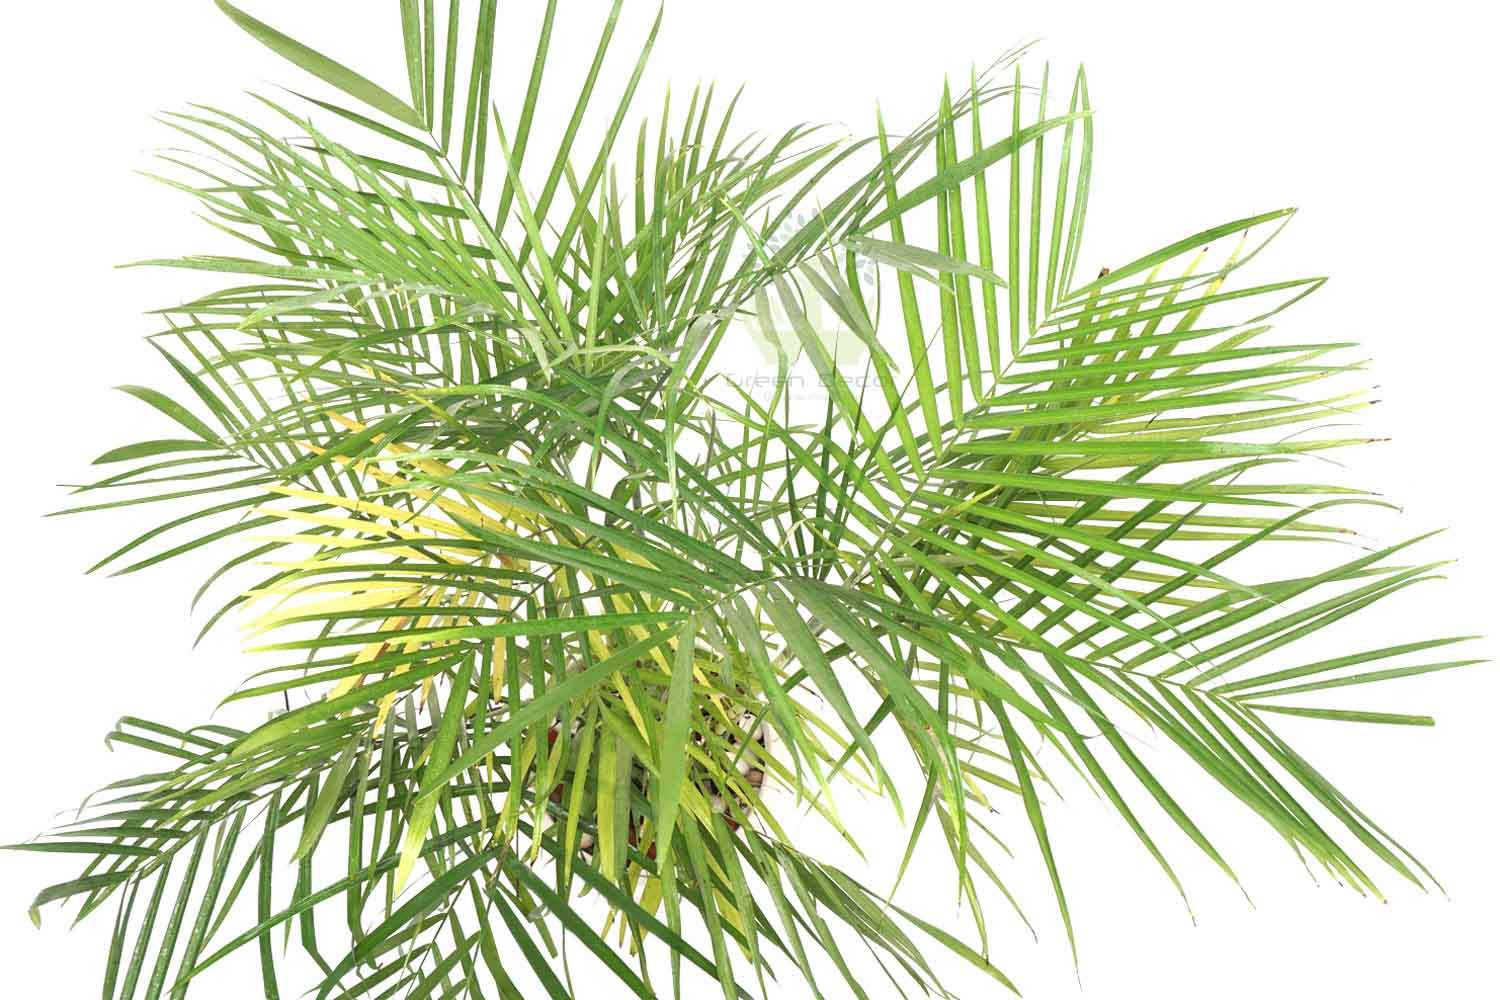 Buy  Areca Palm Plants , White Pots and seeds in Delhi NCR by the best online nursery shop Greendecor.